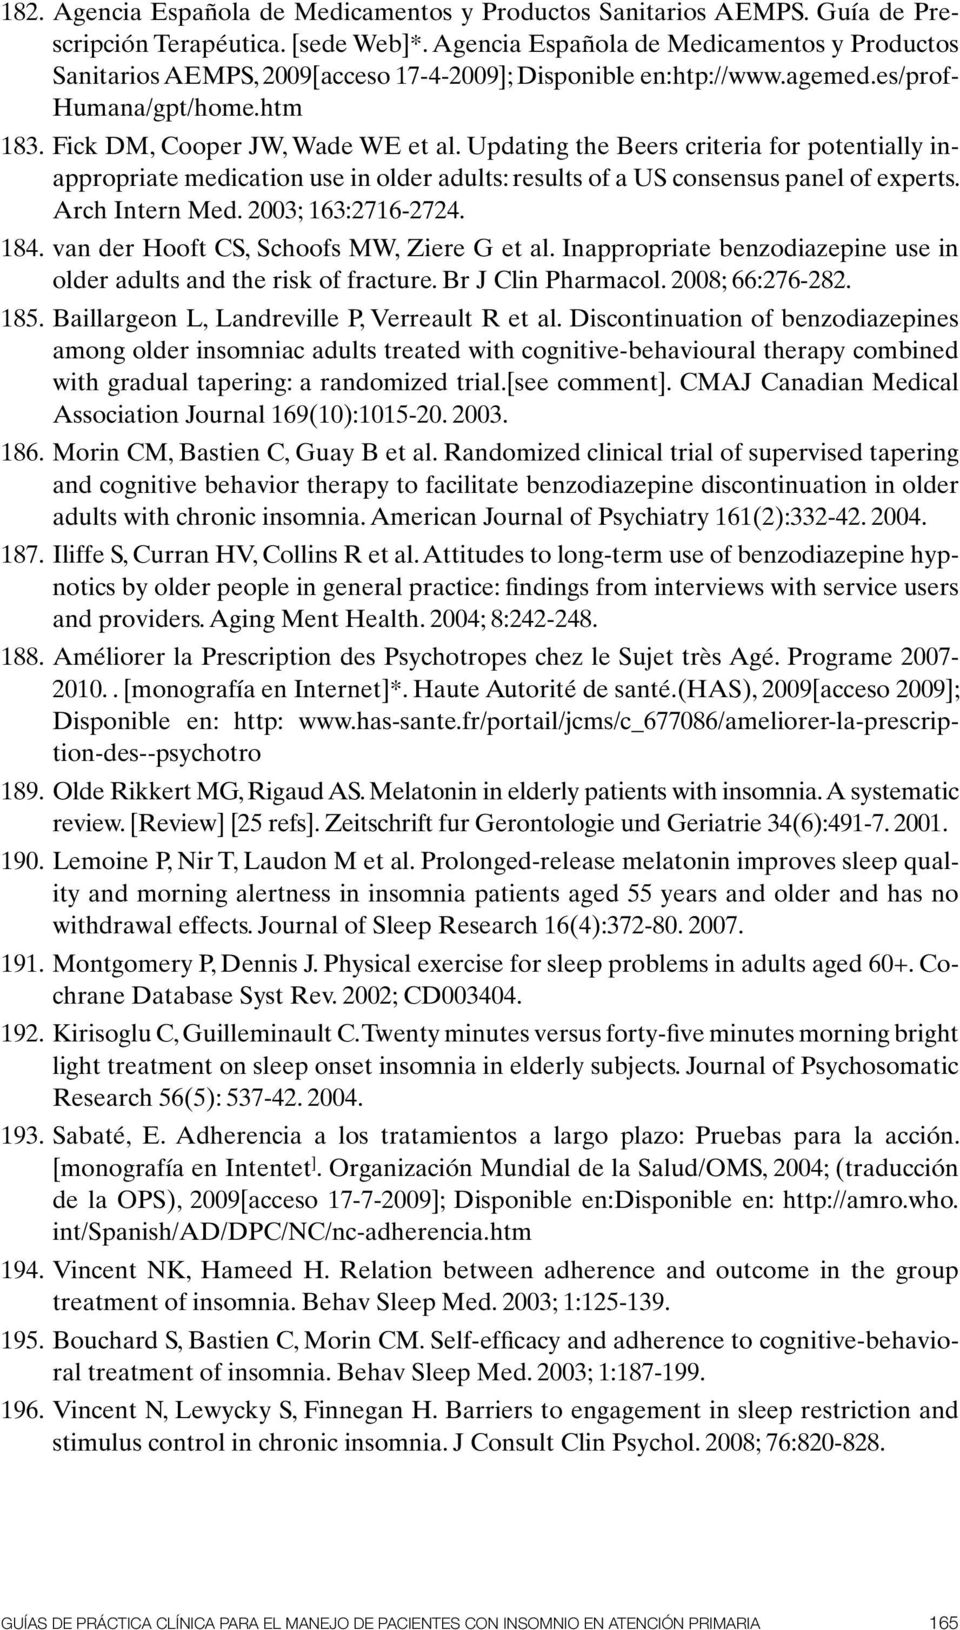 Updating the Beers criteria for potentially inappropriate medication use in older adults: results of a US consensus panel of experts. Arch Intern Med. 2003; 163:2716-2724. 184.